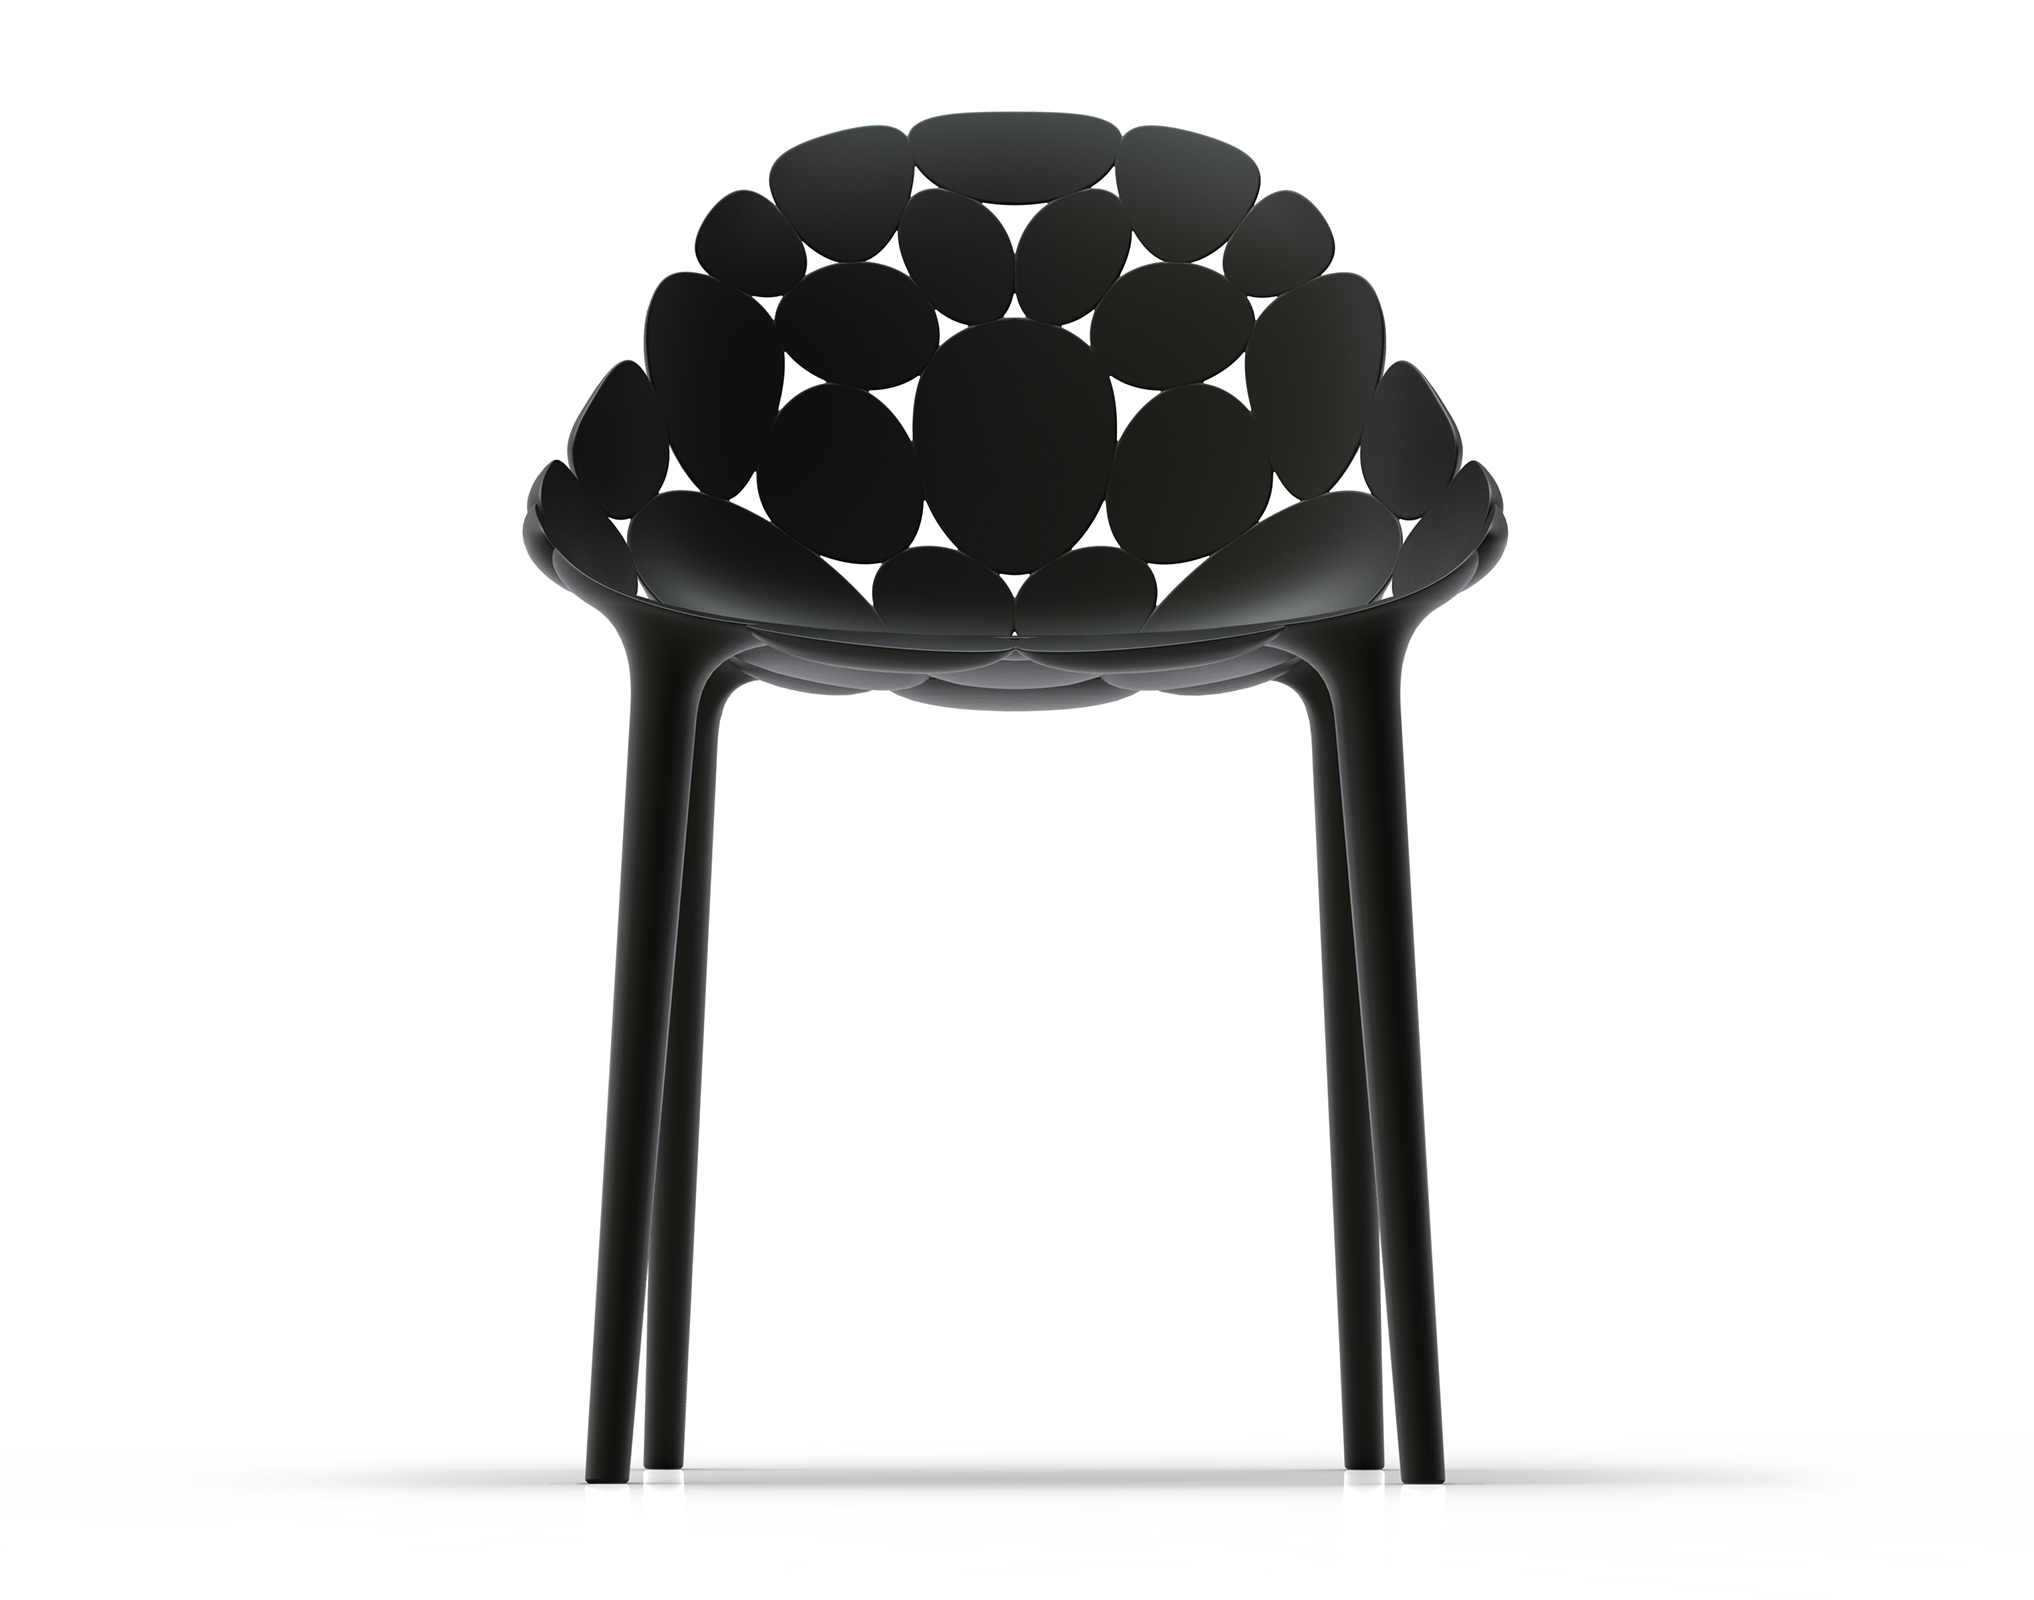 06_CLOUD-IO_chair_black_front